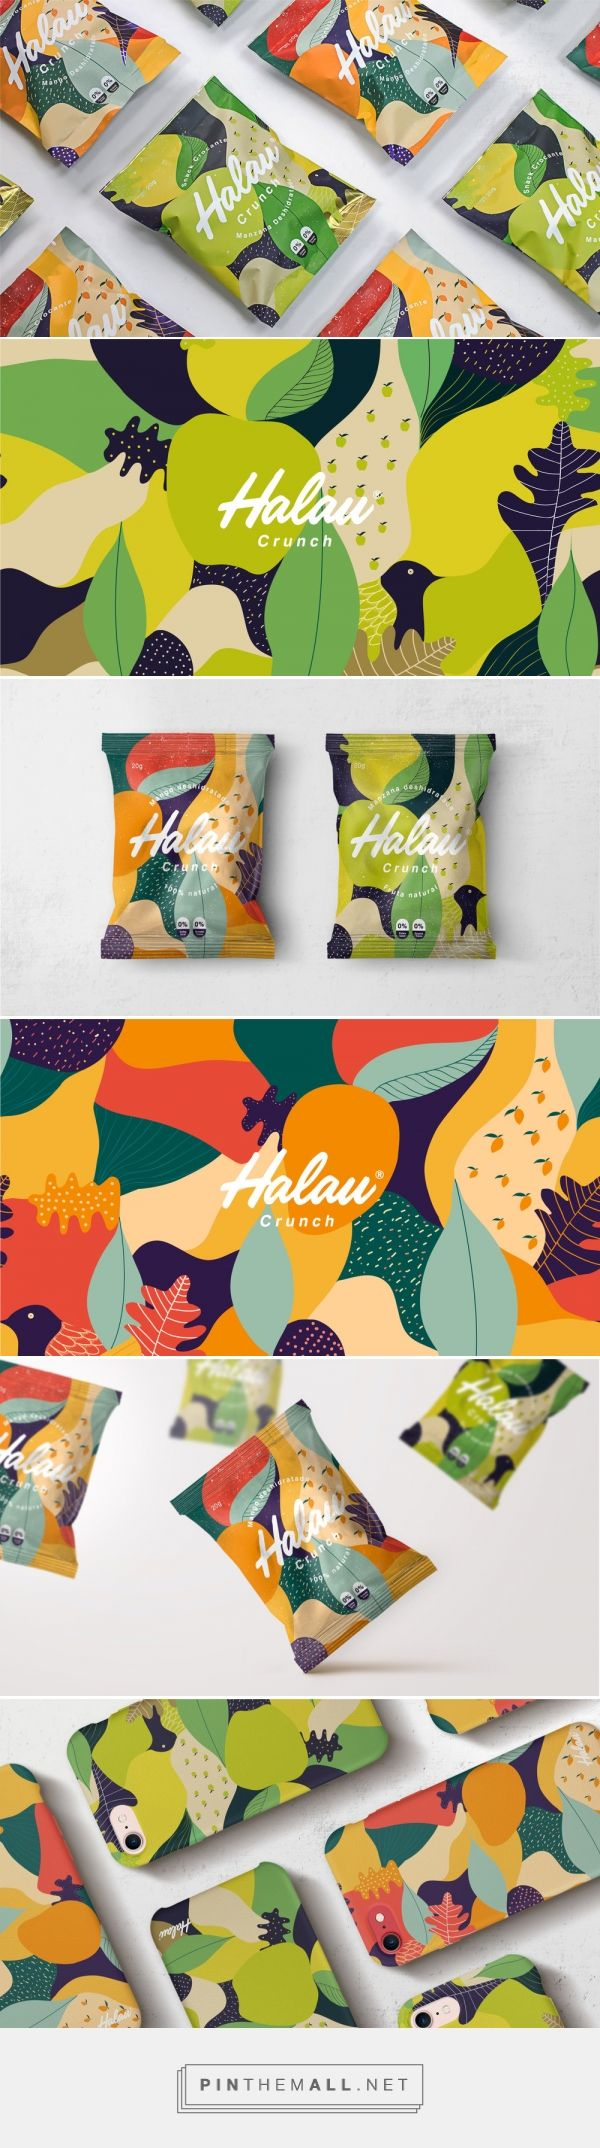 The Packaging for These Fruit Snacks Were Inspired By The Isles of Hawaii — The Dieline | Packaging & Branding Design & Innovation News - created via https://pinthemall.net